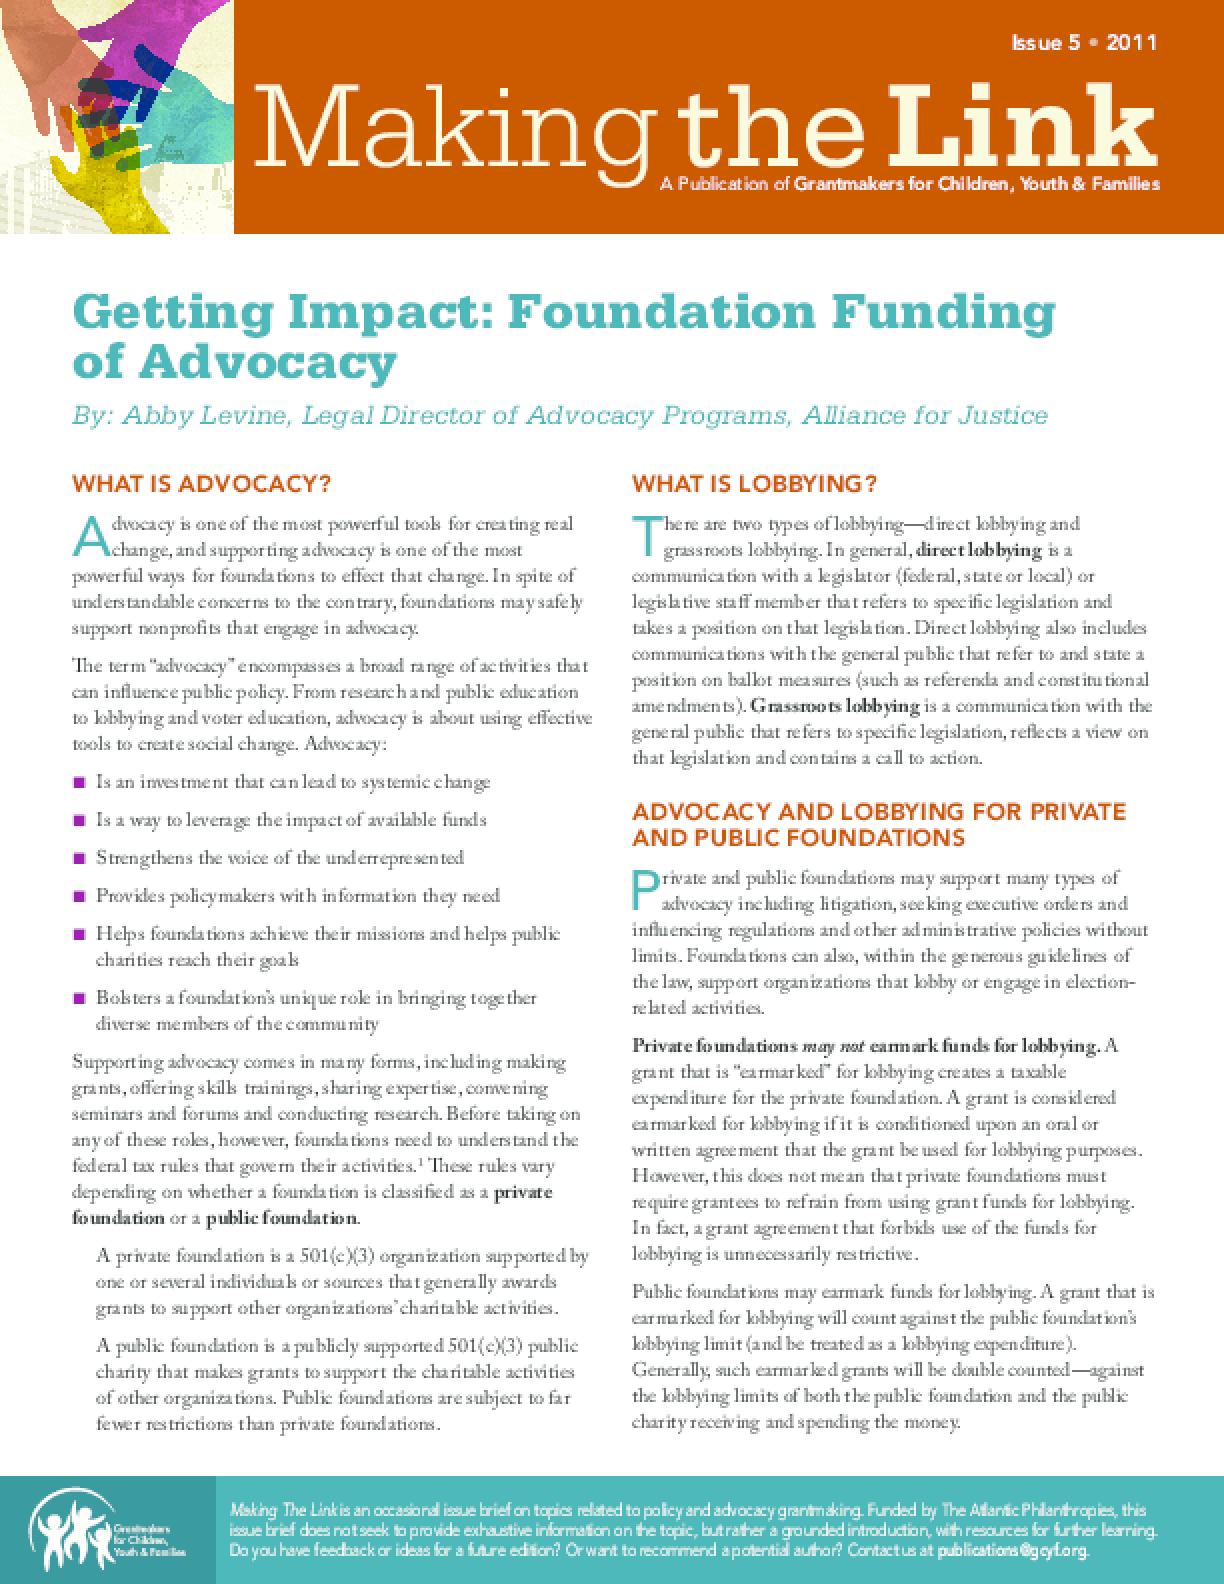 Getting Impact: Foundation Funding of Advocacy